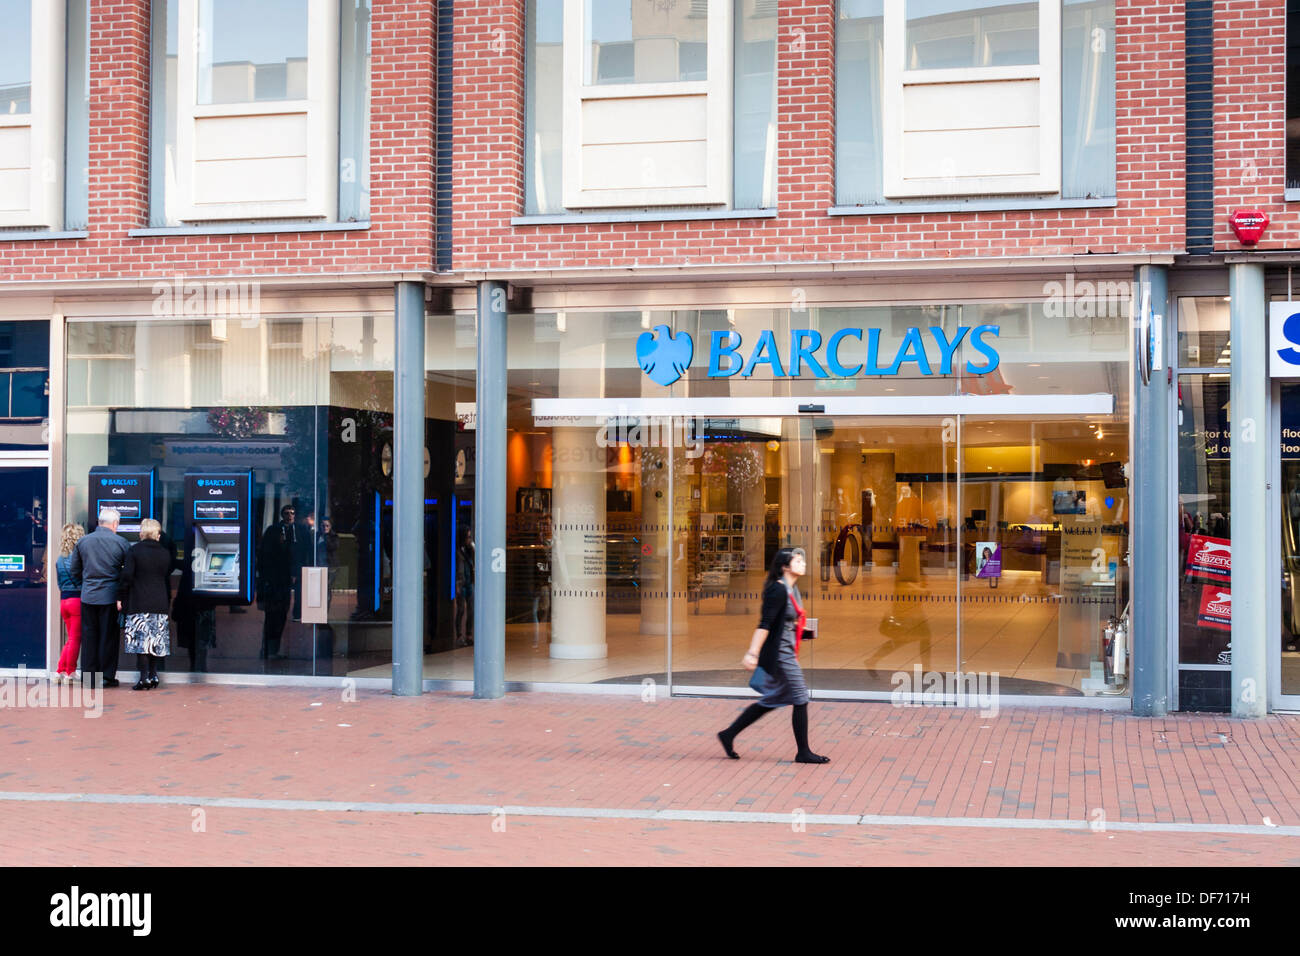 UK high street bank, Barclays, in Reading, Berkshire, England, GB, UK - Stock Image